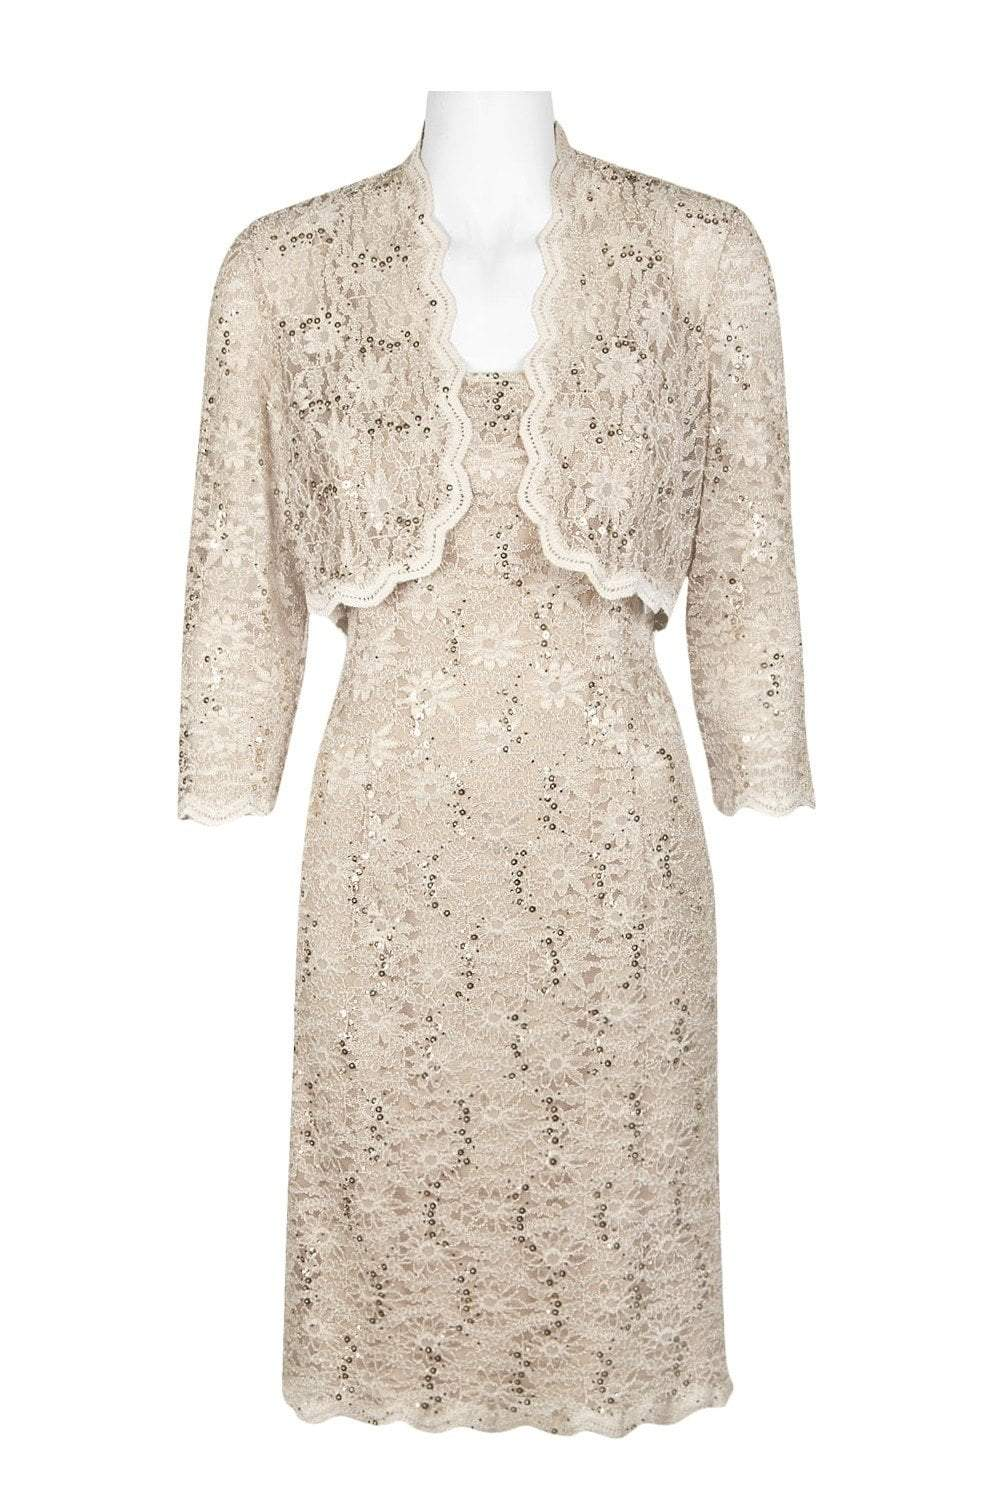 Alex Evenings - 1122090 Allover Lace Sequin Dress with Bolero in Gray